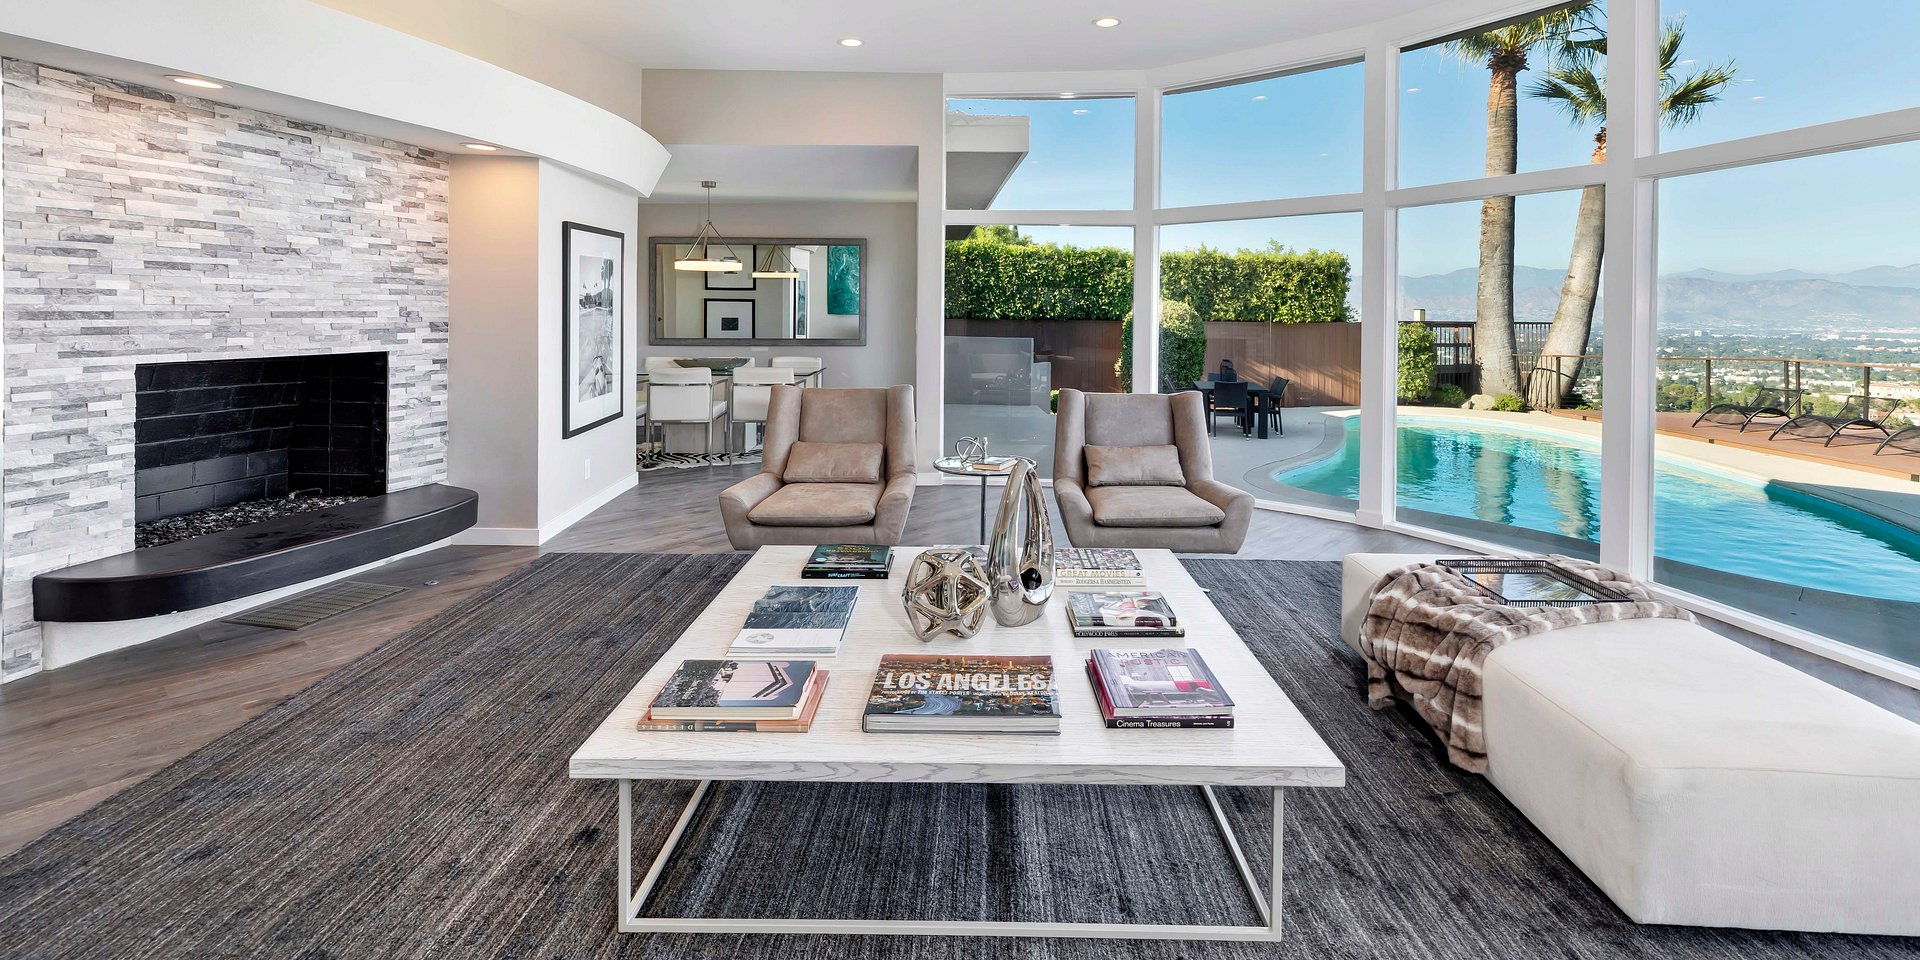 Coldwell Banker Residential Brokerage Lists Sherman Oaks Property for $2.145 Million